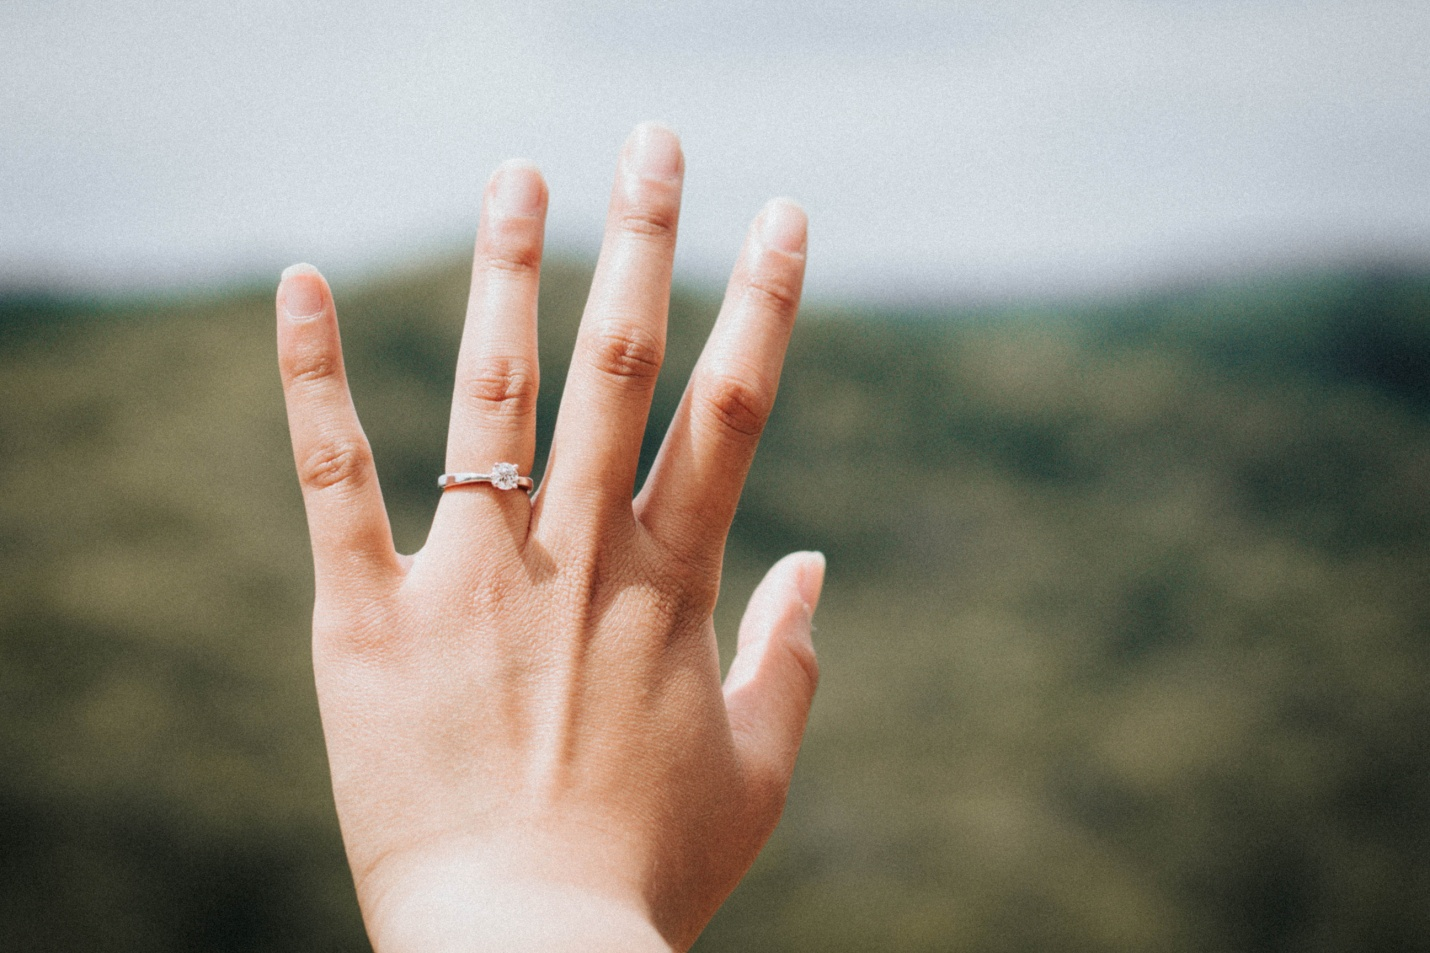 how to figure out what ring she wants without asking